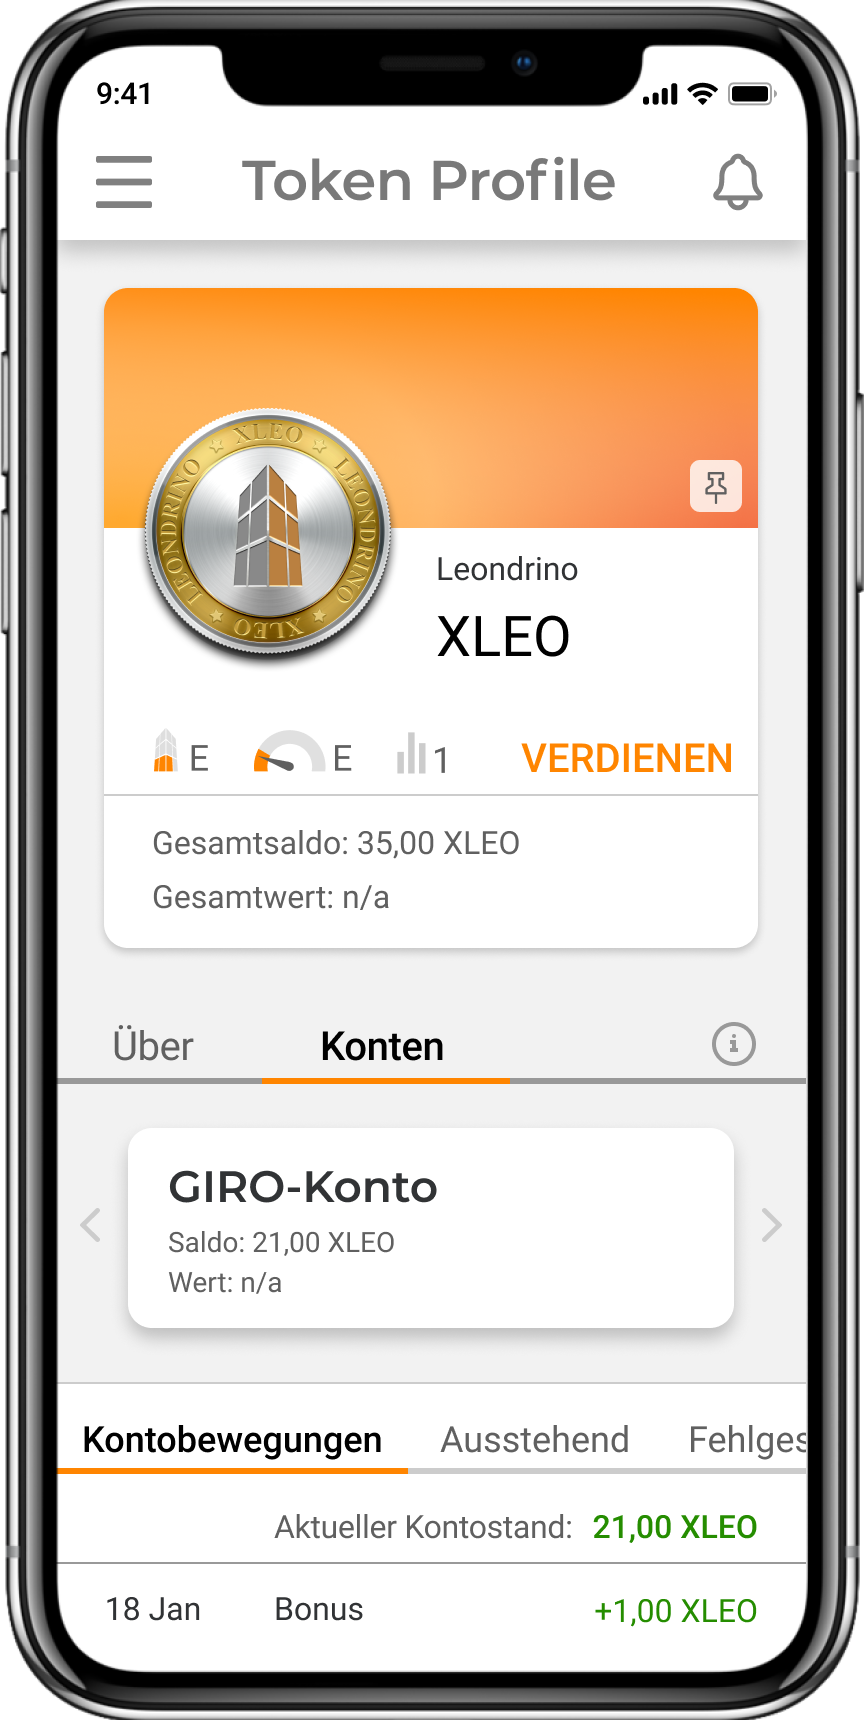 Token Profile DE